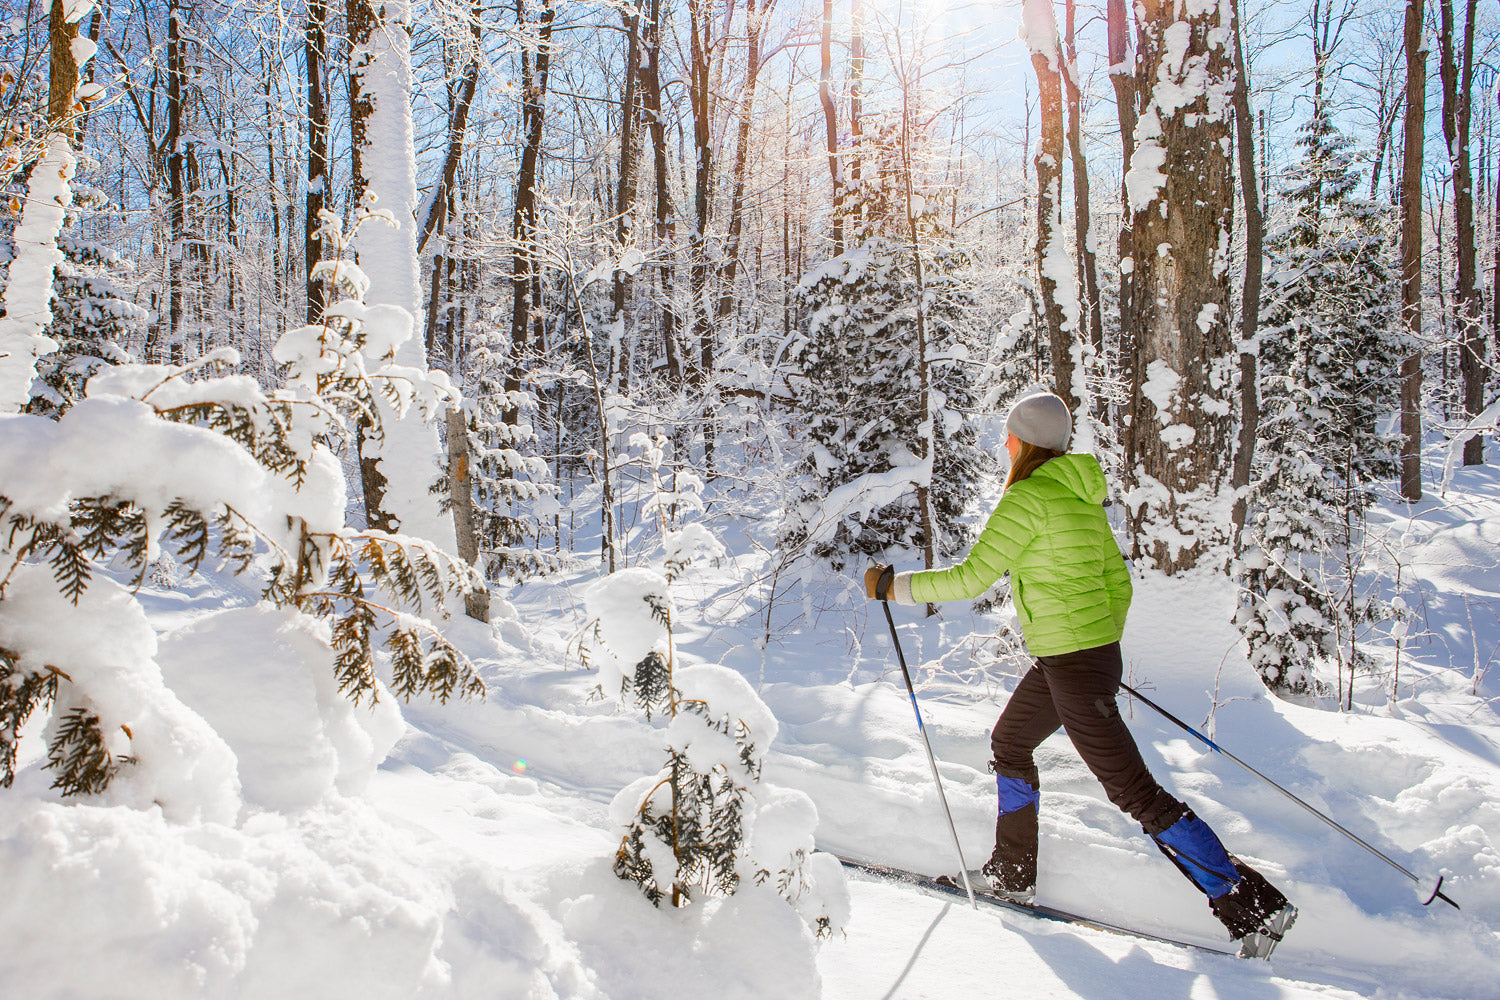 Young woman skiing through a snow covered forest on nordic skis